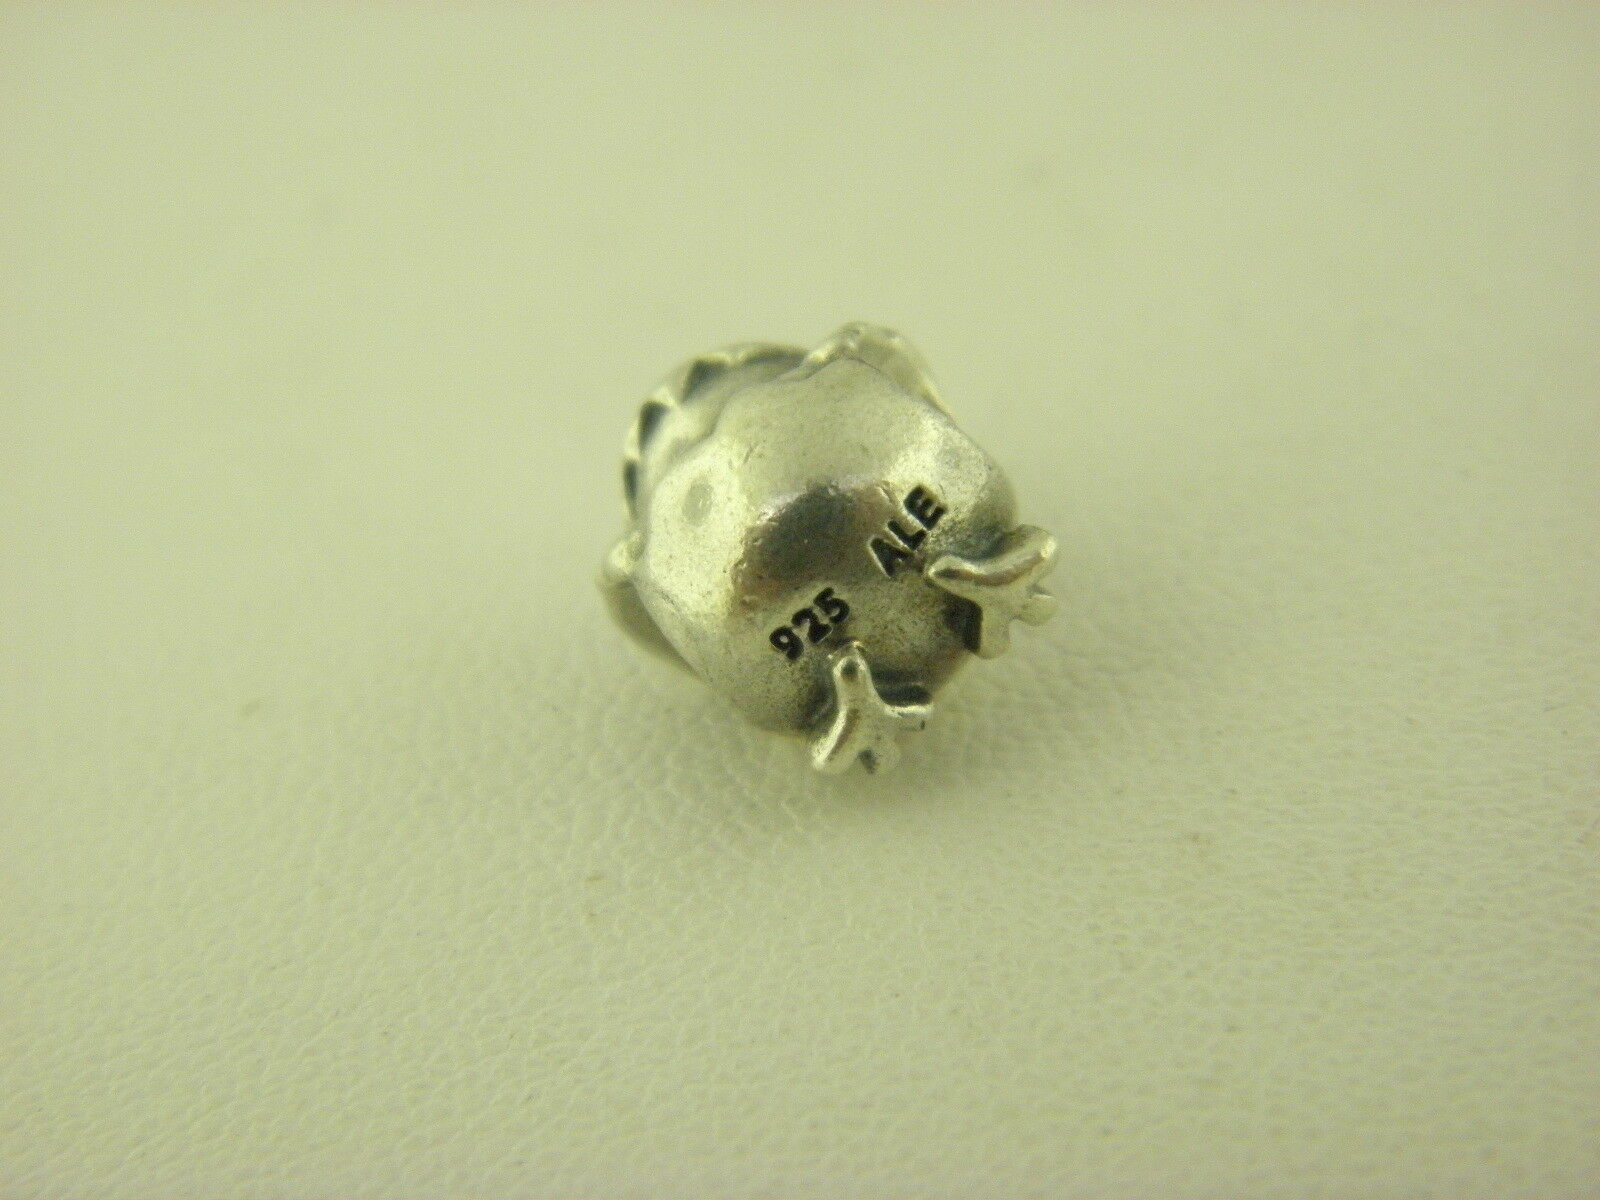 Pandora Hatching Chick Charm in Sterling Silber